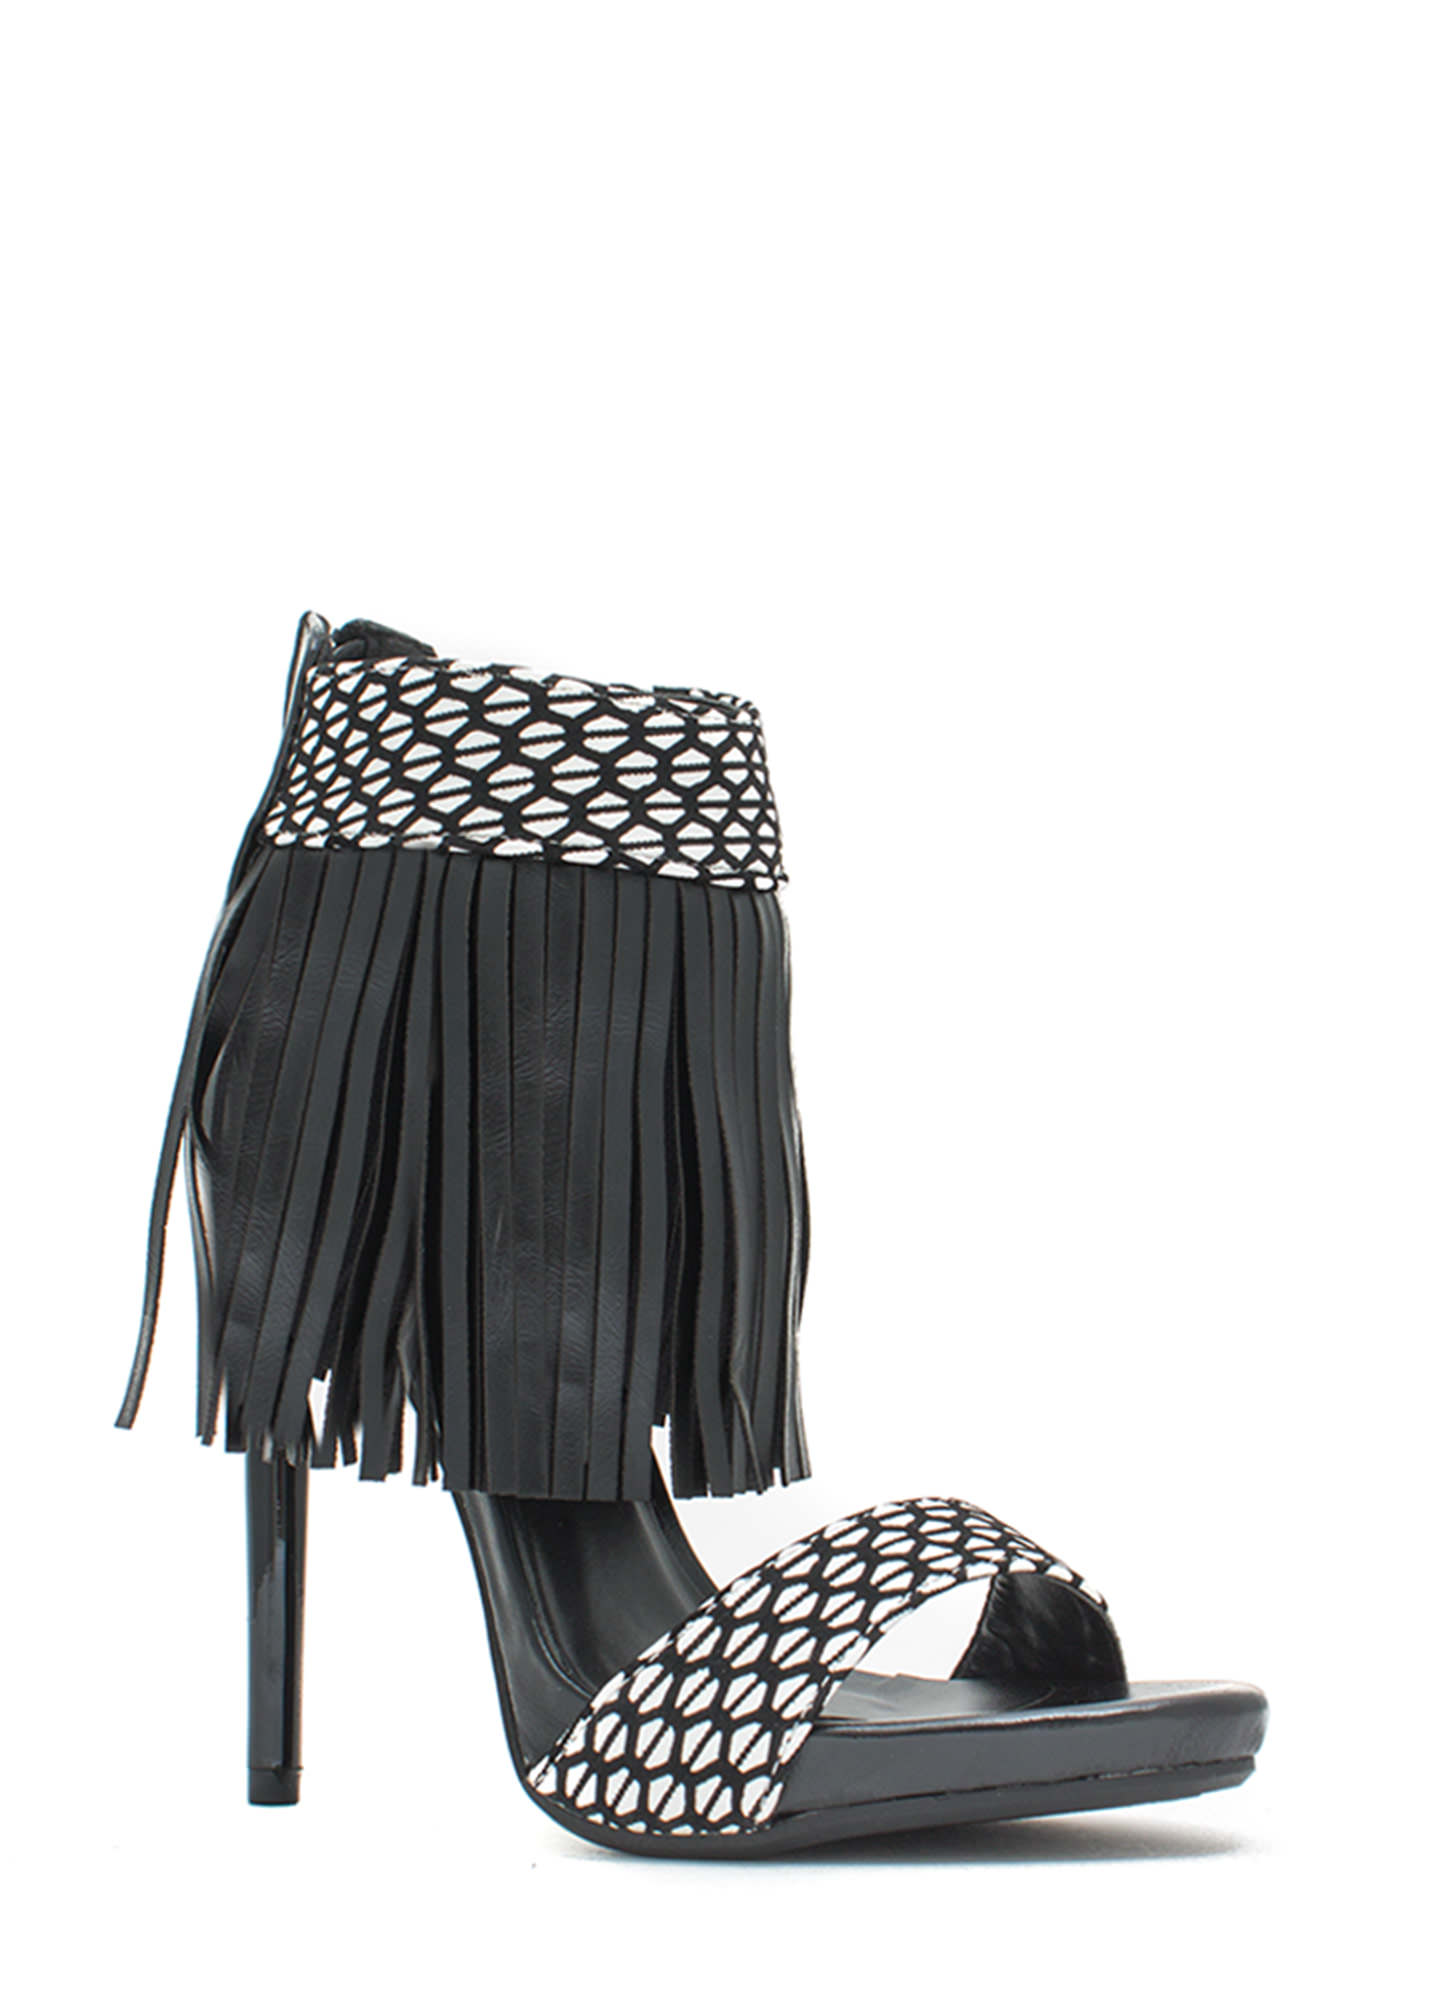 Fringe Party Patterned Heels BLACK